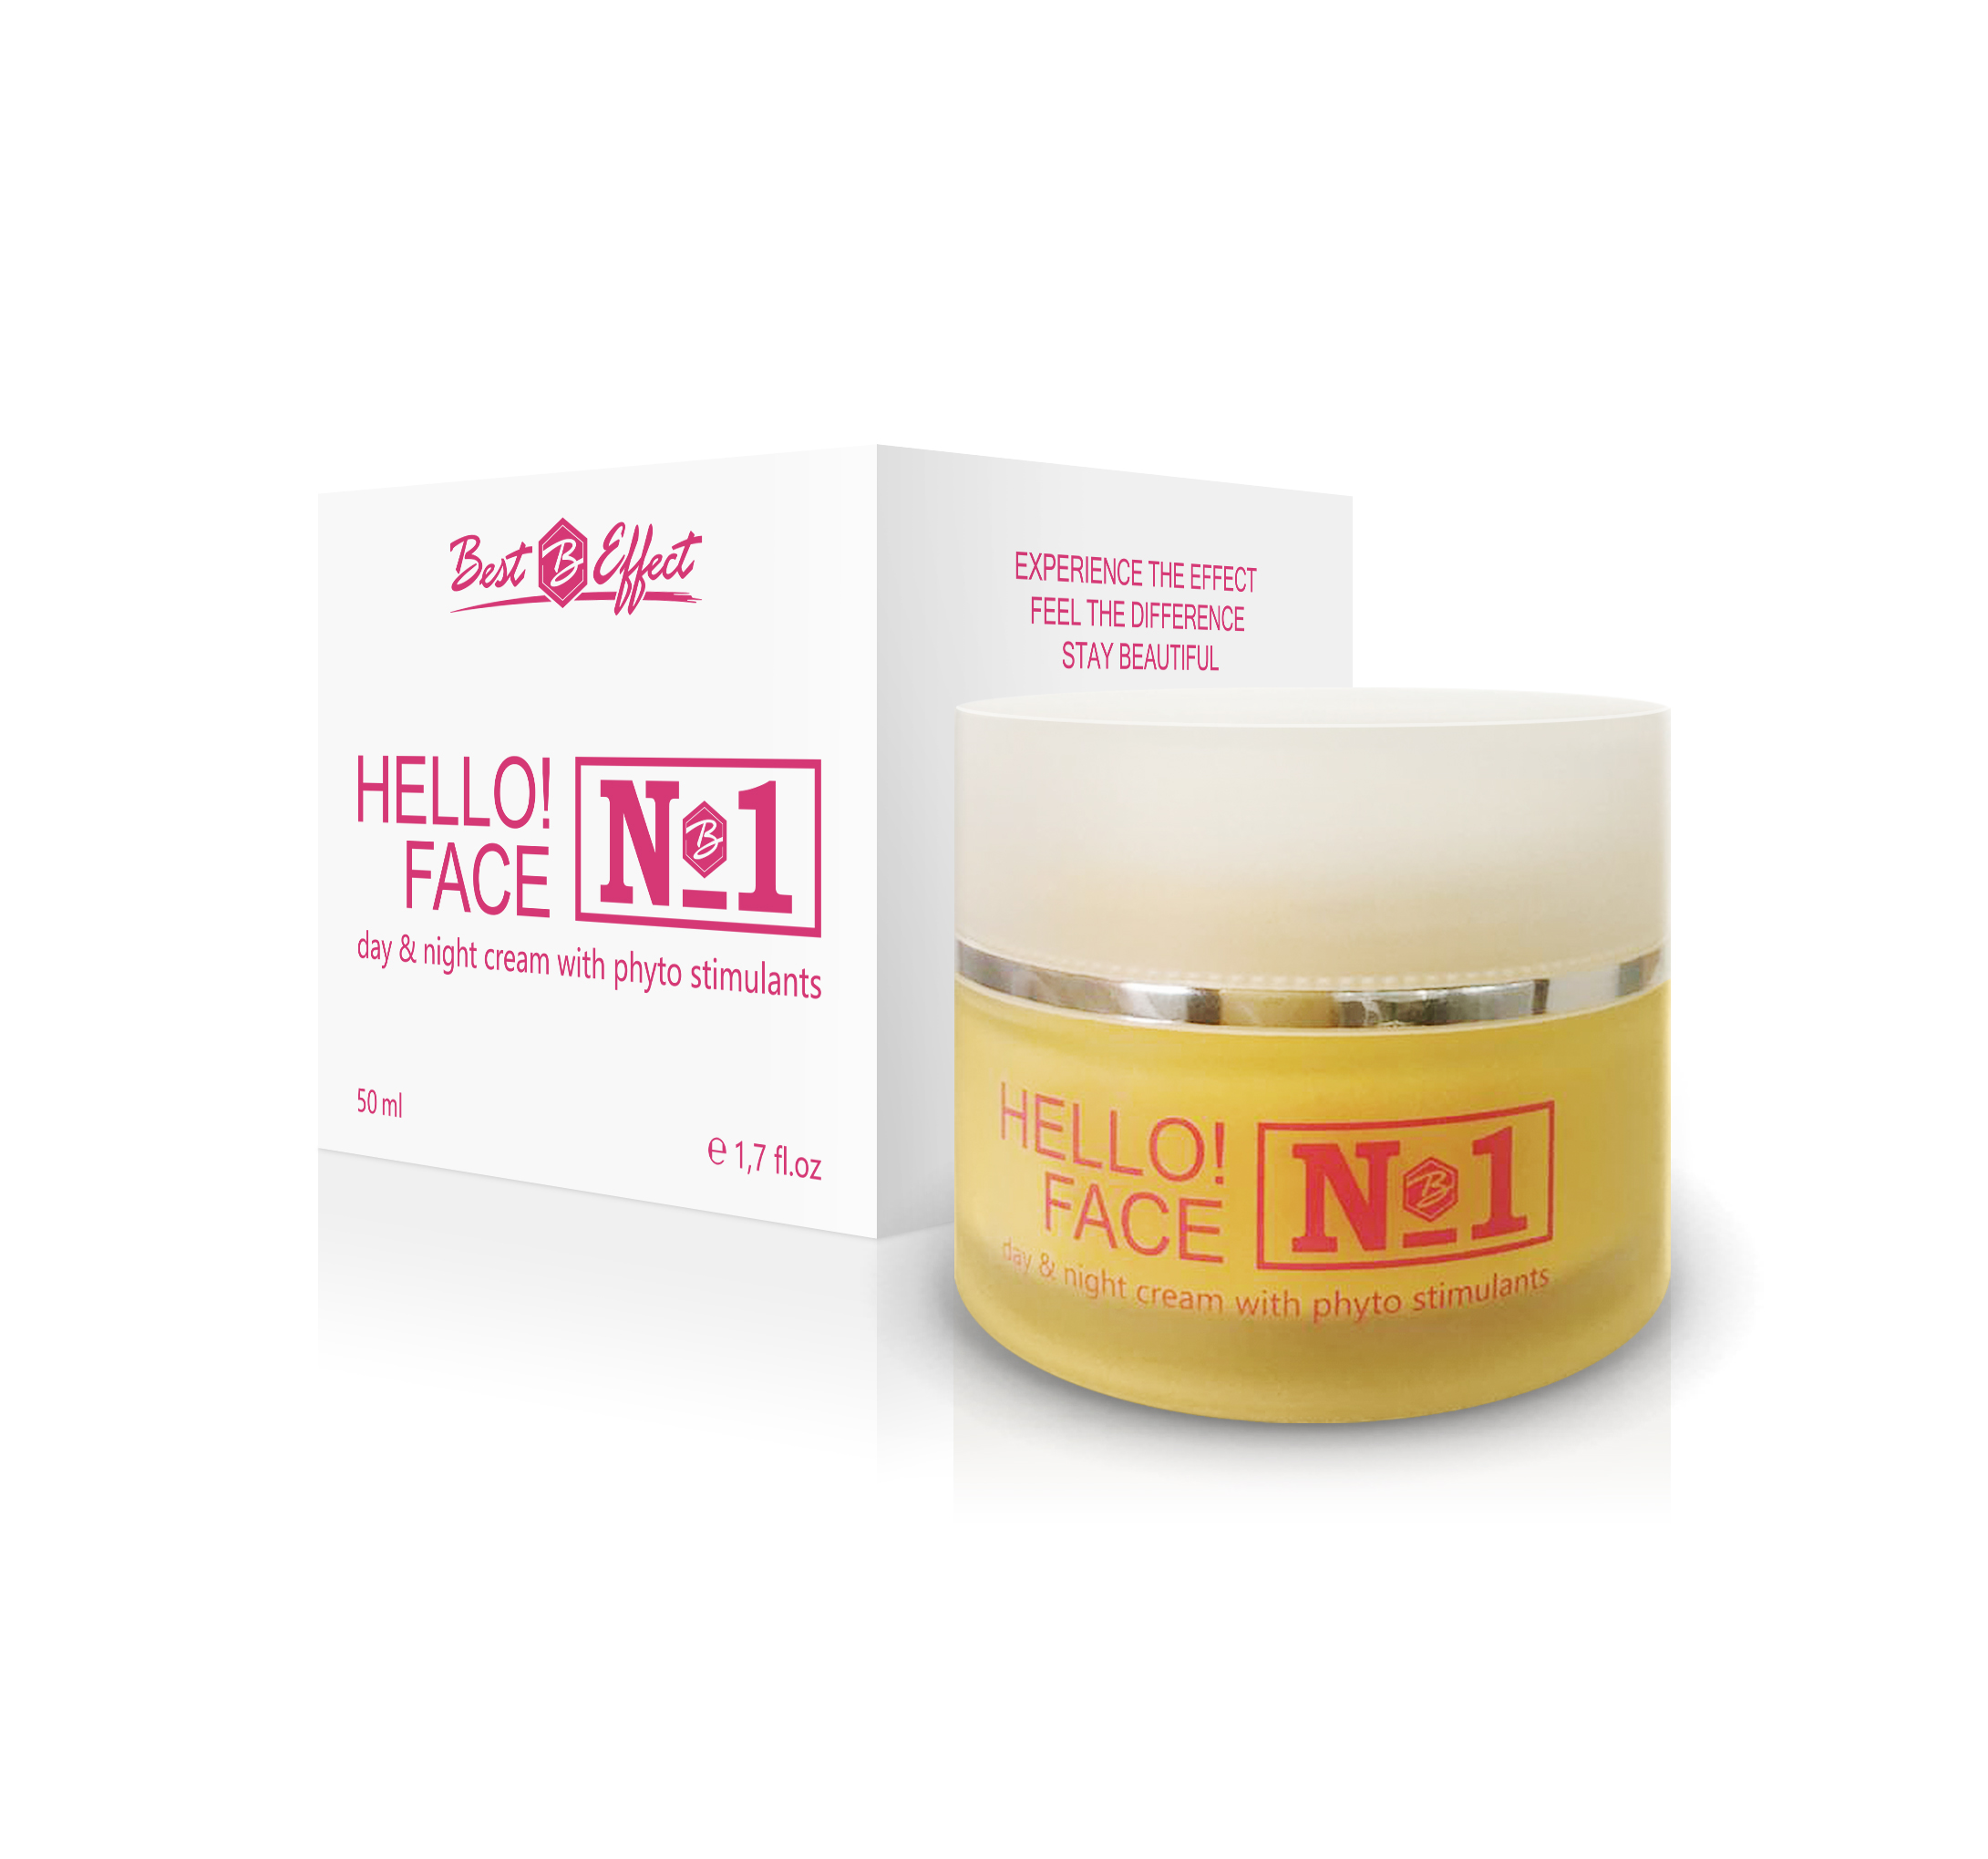 Hello!Face N1 day & night cream